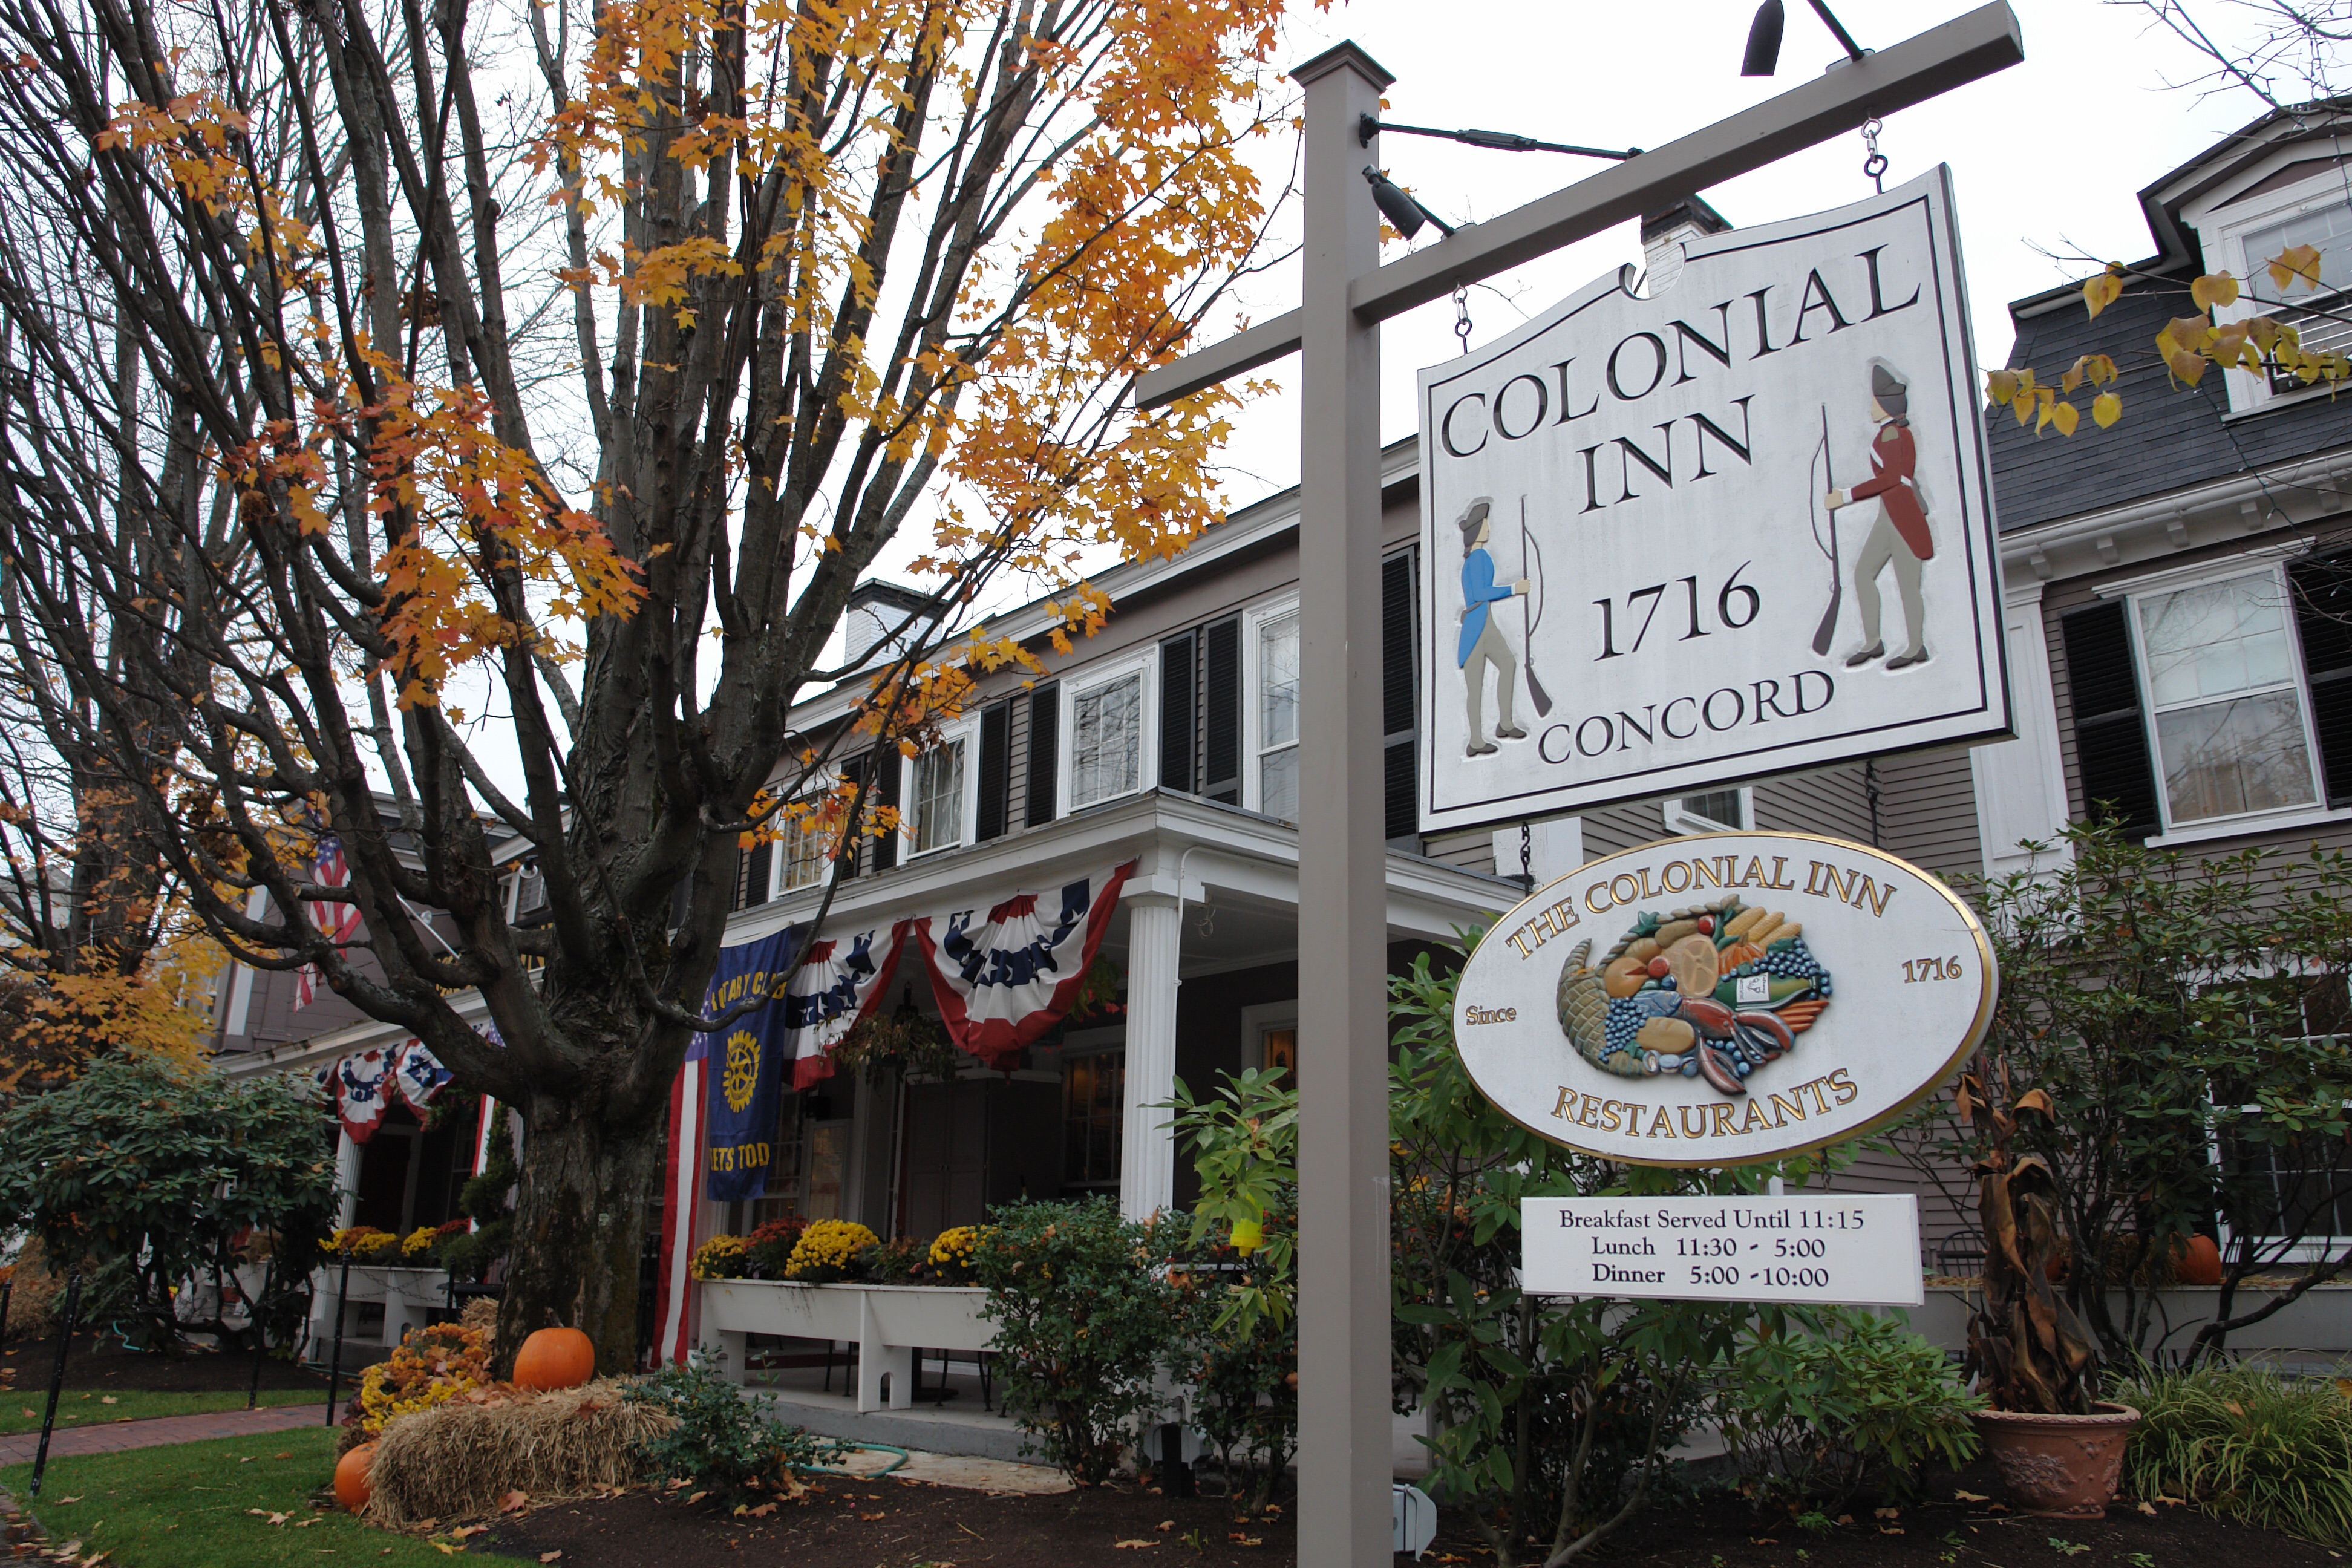 Concord's Colonial Inn and Restaurant